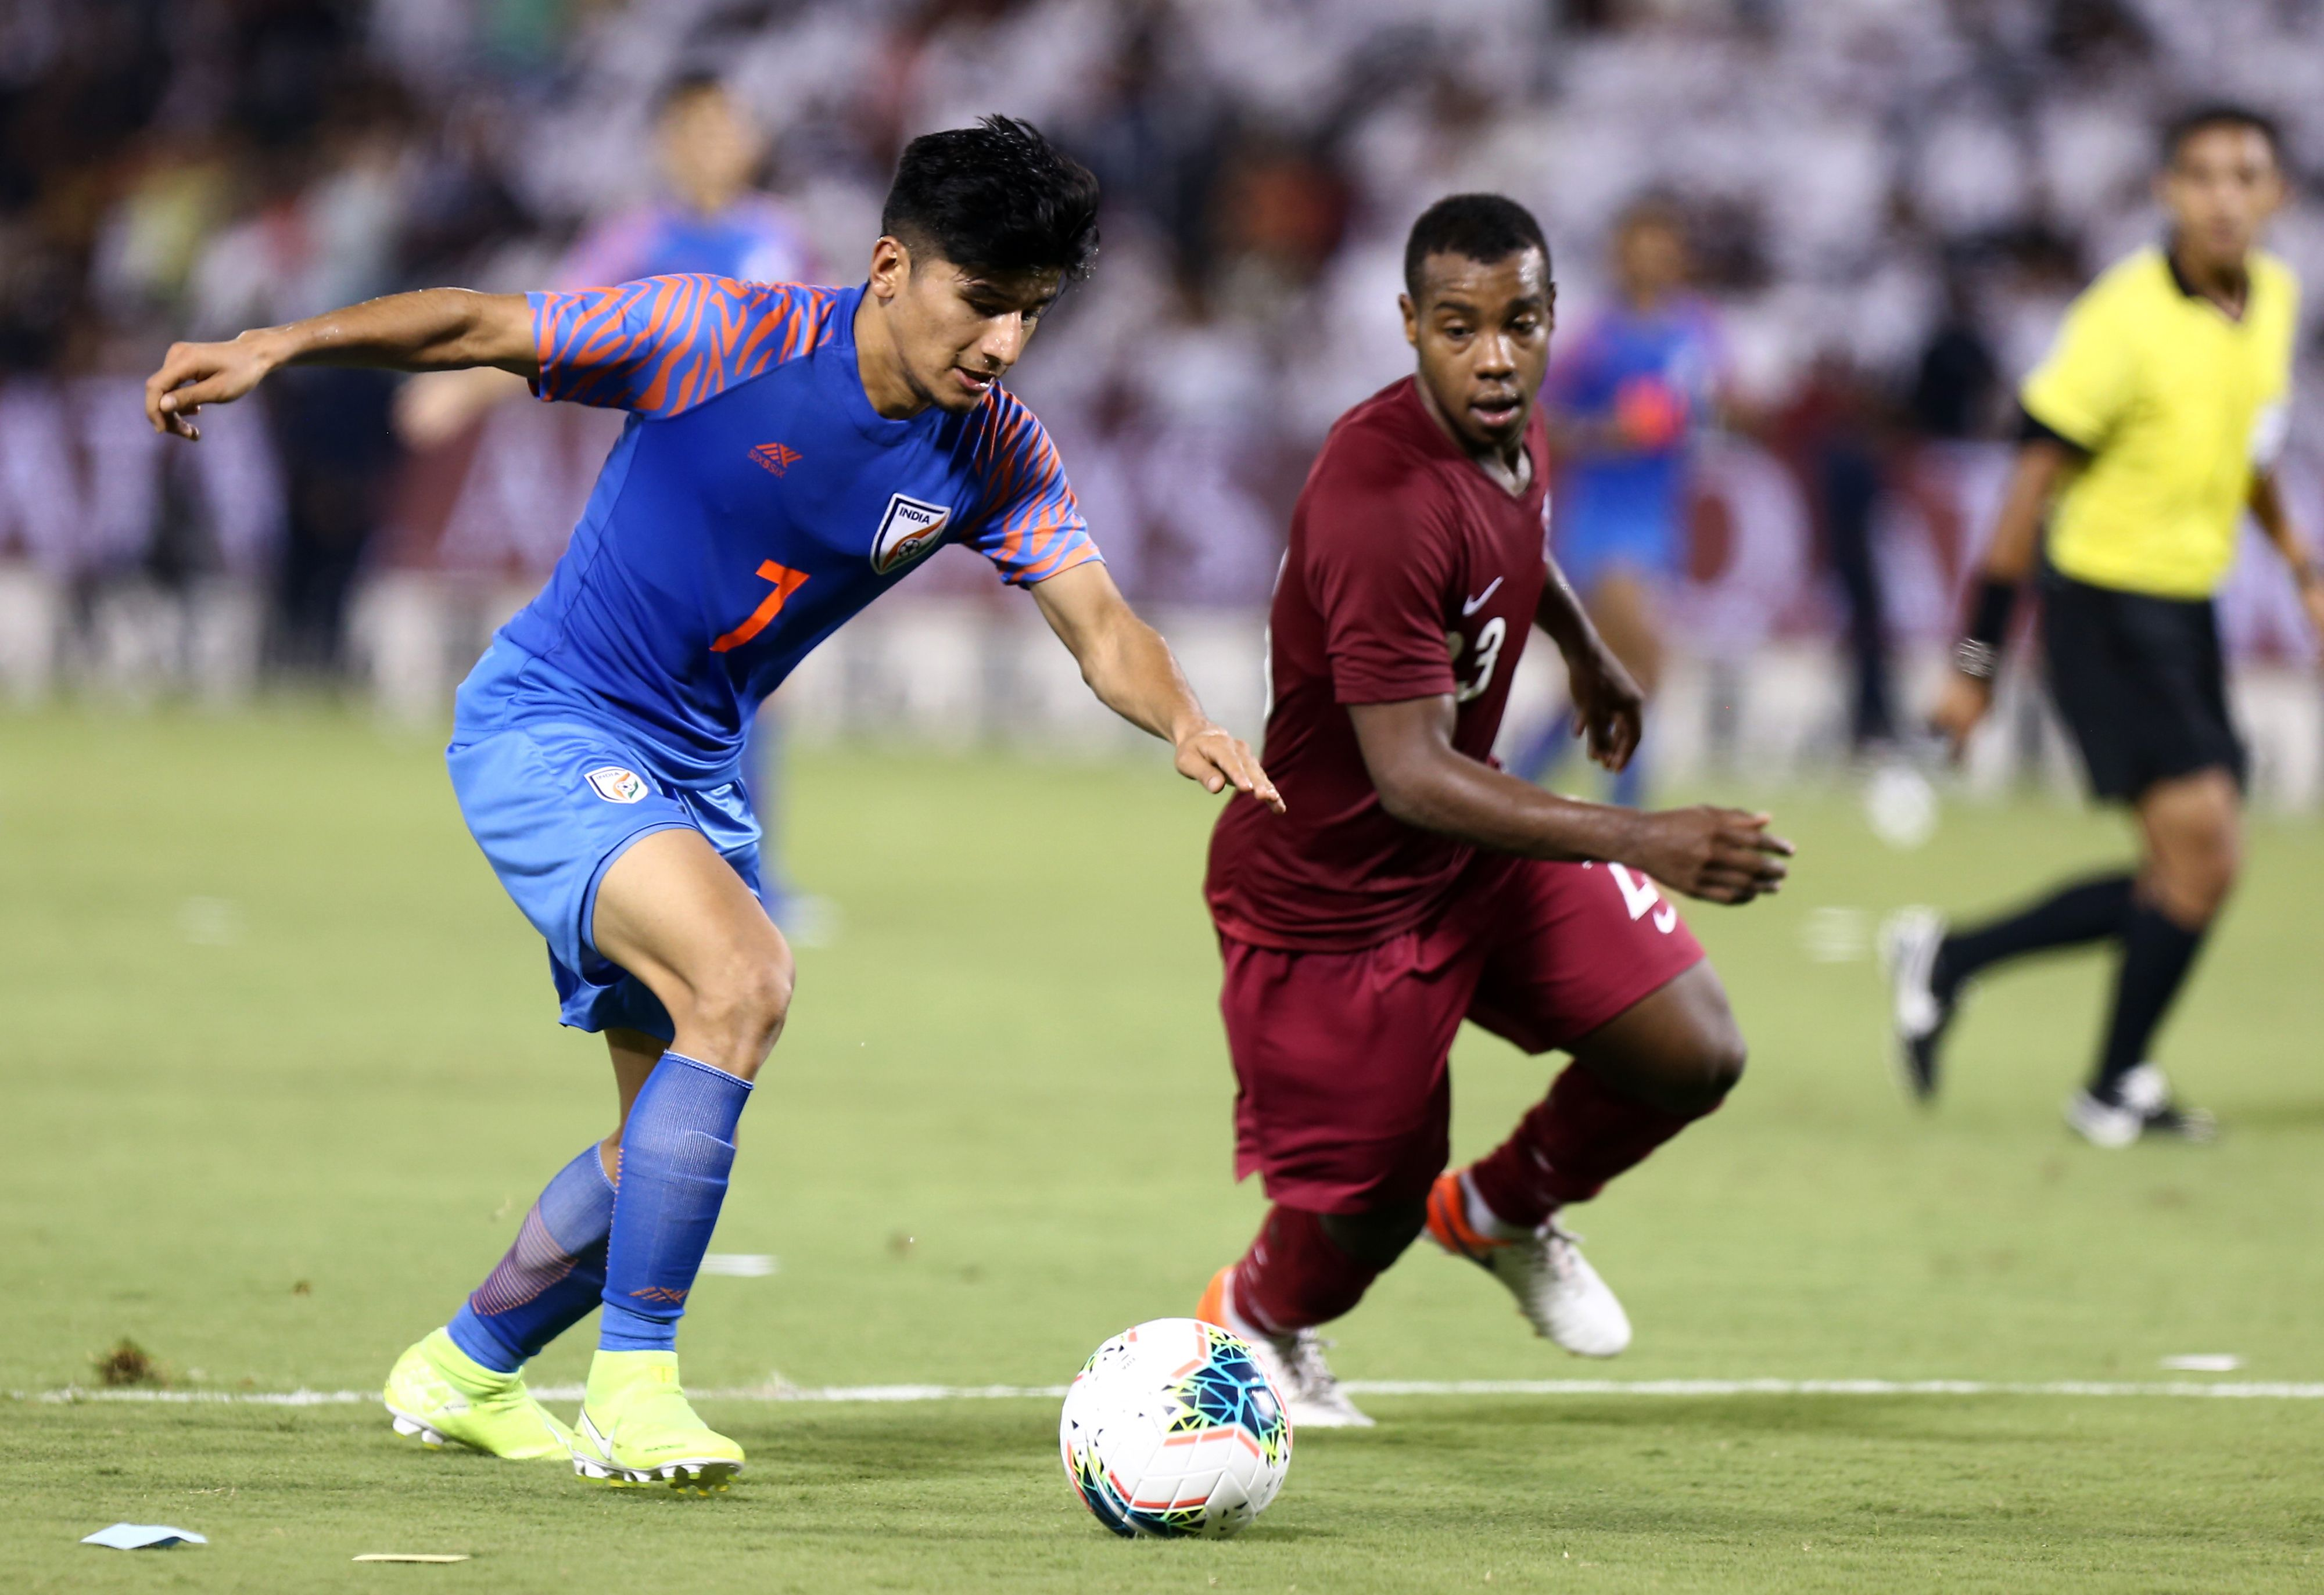 India's midfielder Anirudh Thapa (L) vies for the ball against Qatar's defender Assim Madibo (AFP/Getty Images)